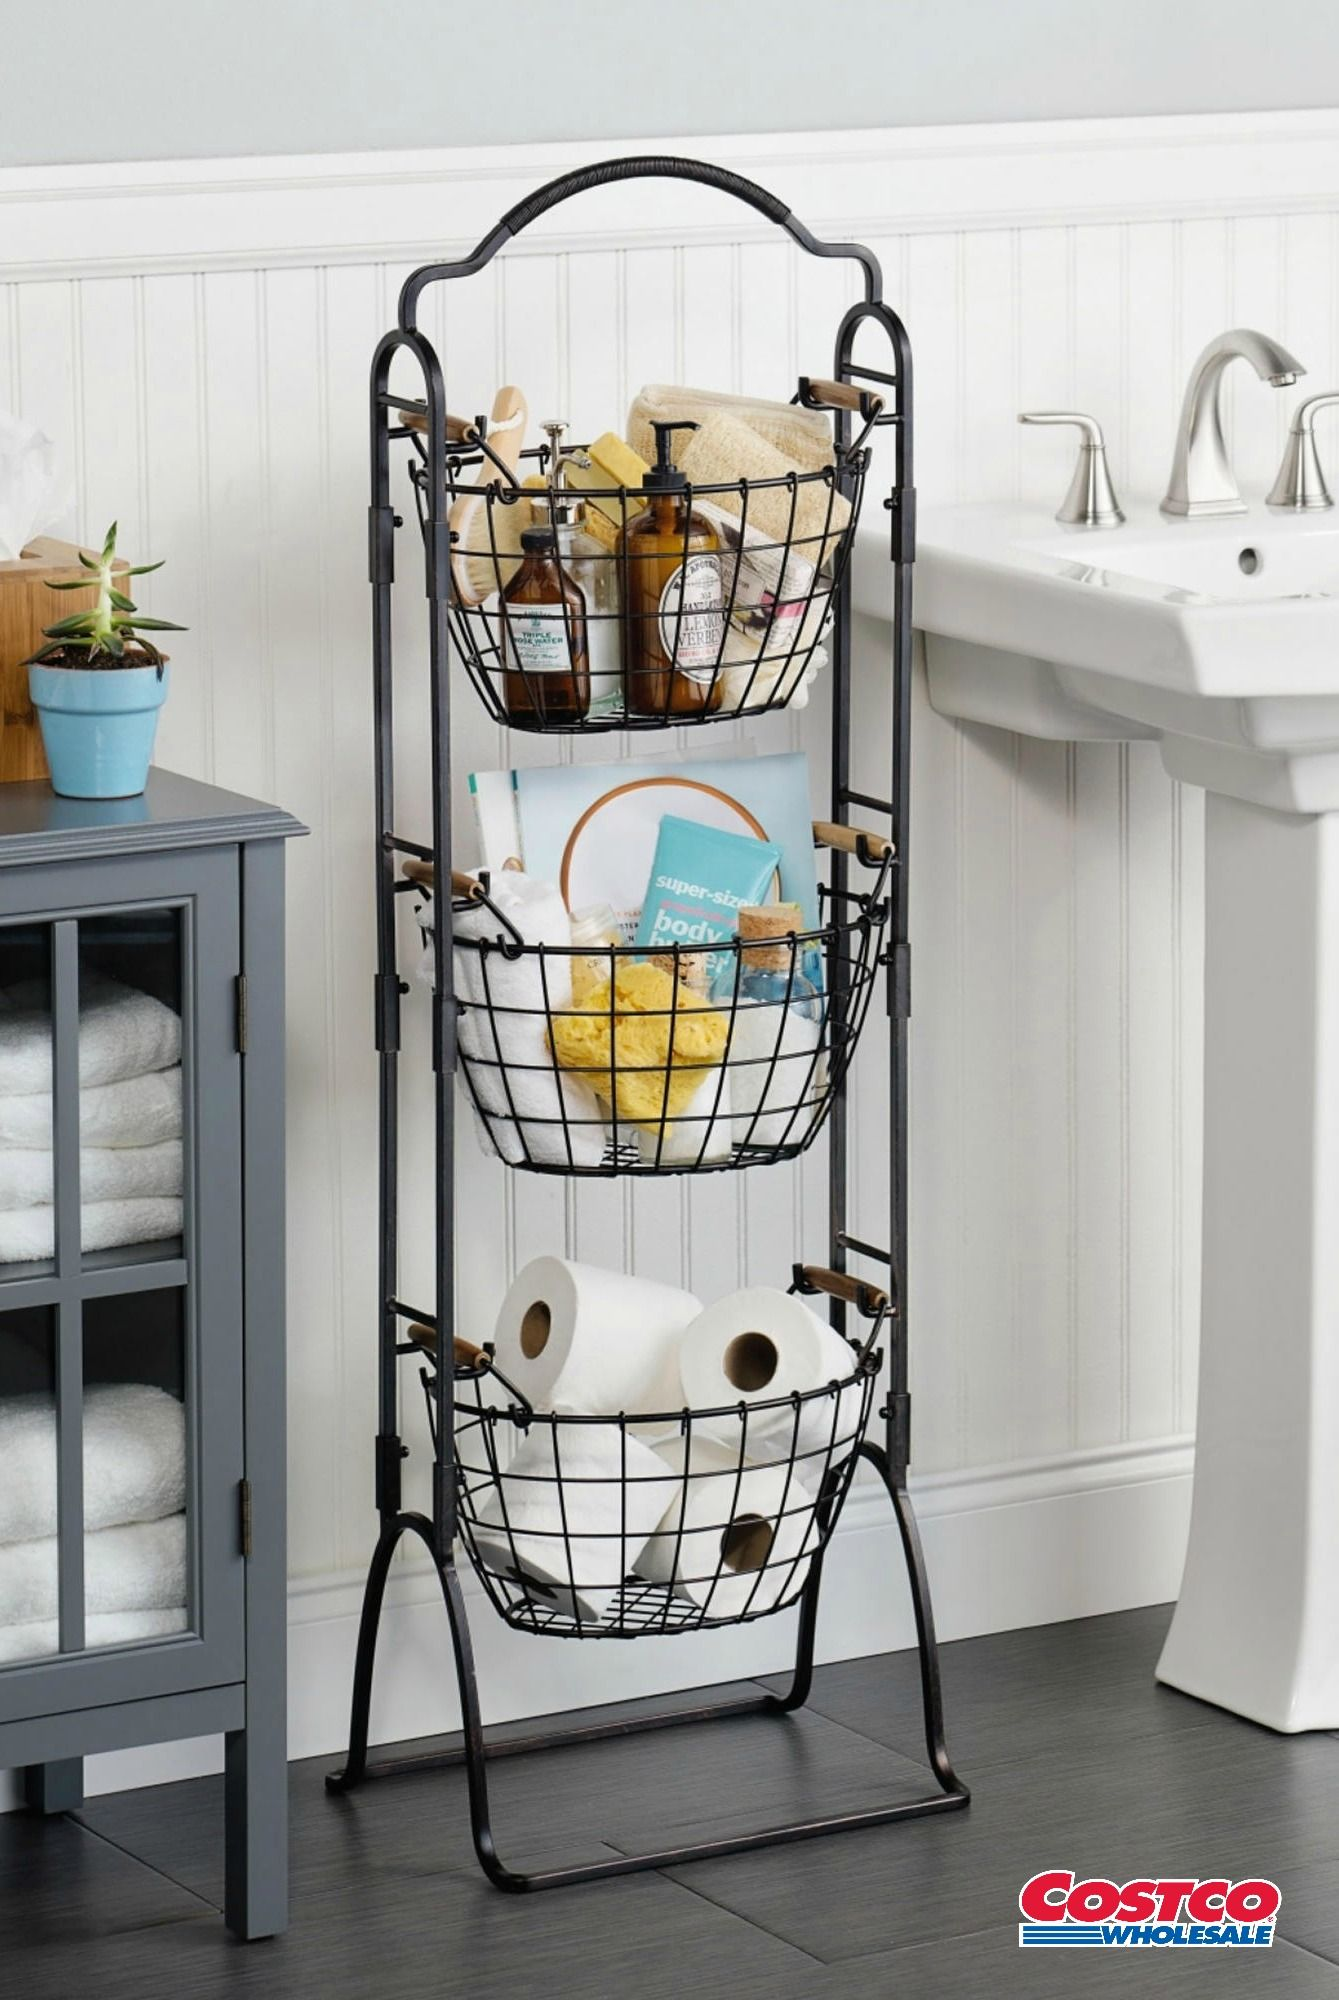 This 3 Tier Market Basket Stand is an attractive storage solution